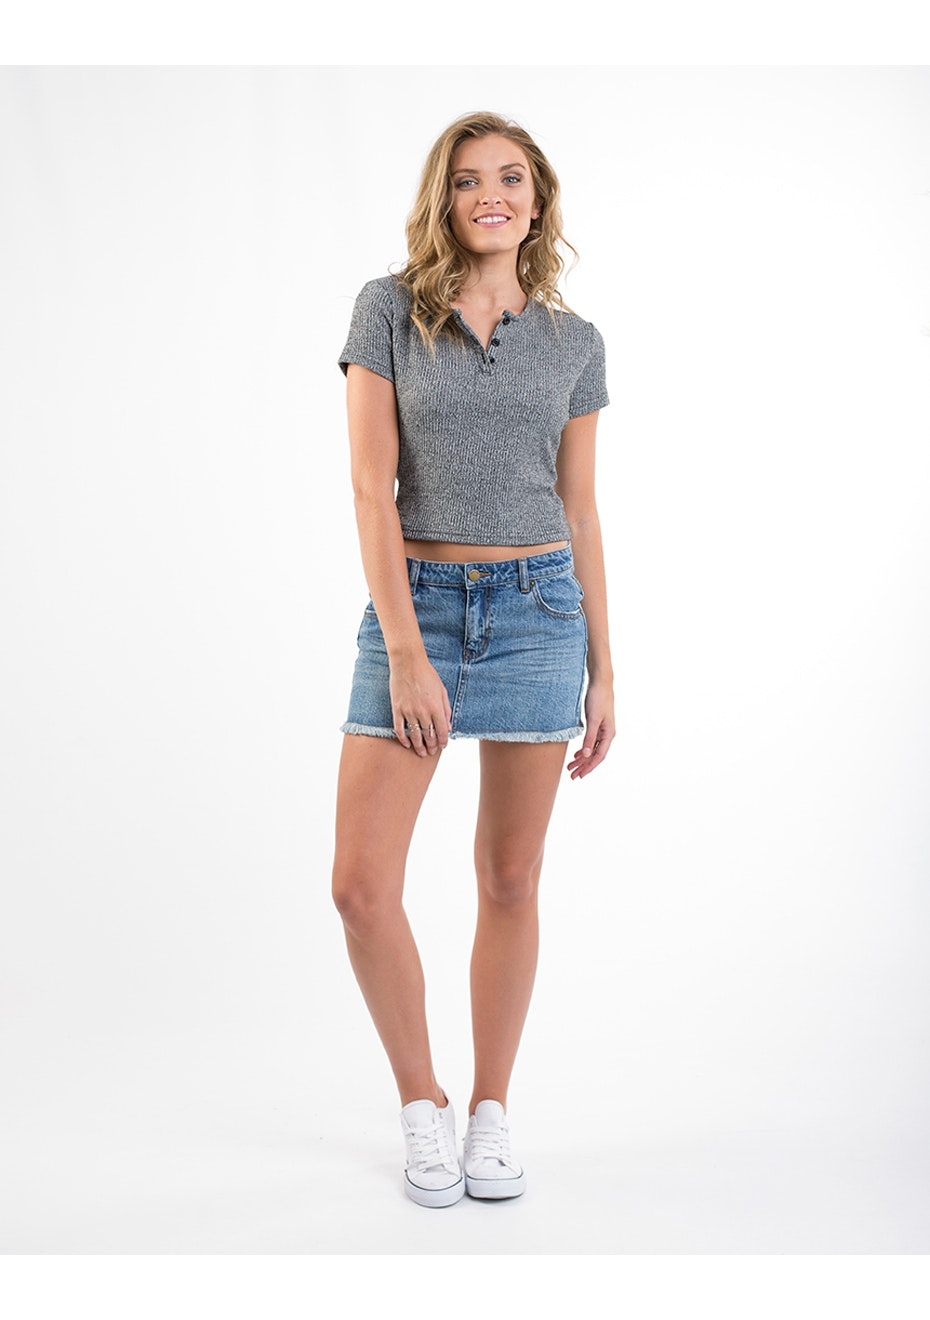 All About Eve - Jelly Crop - Grey Marle